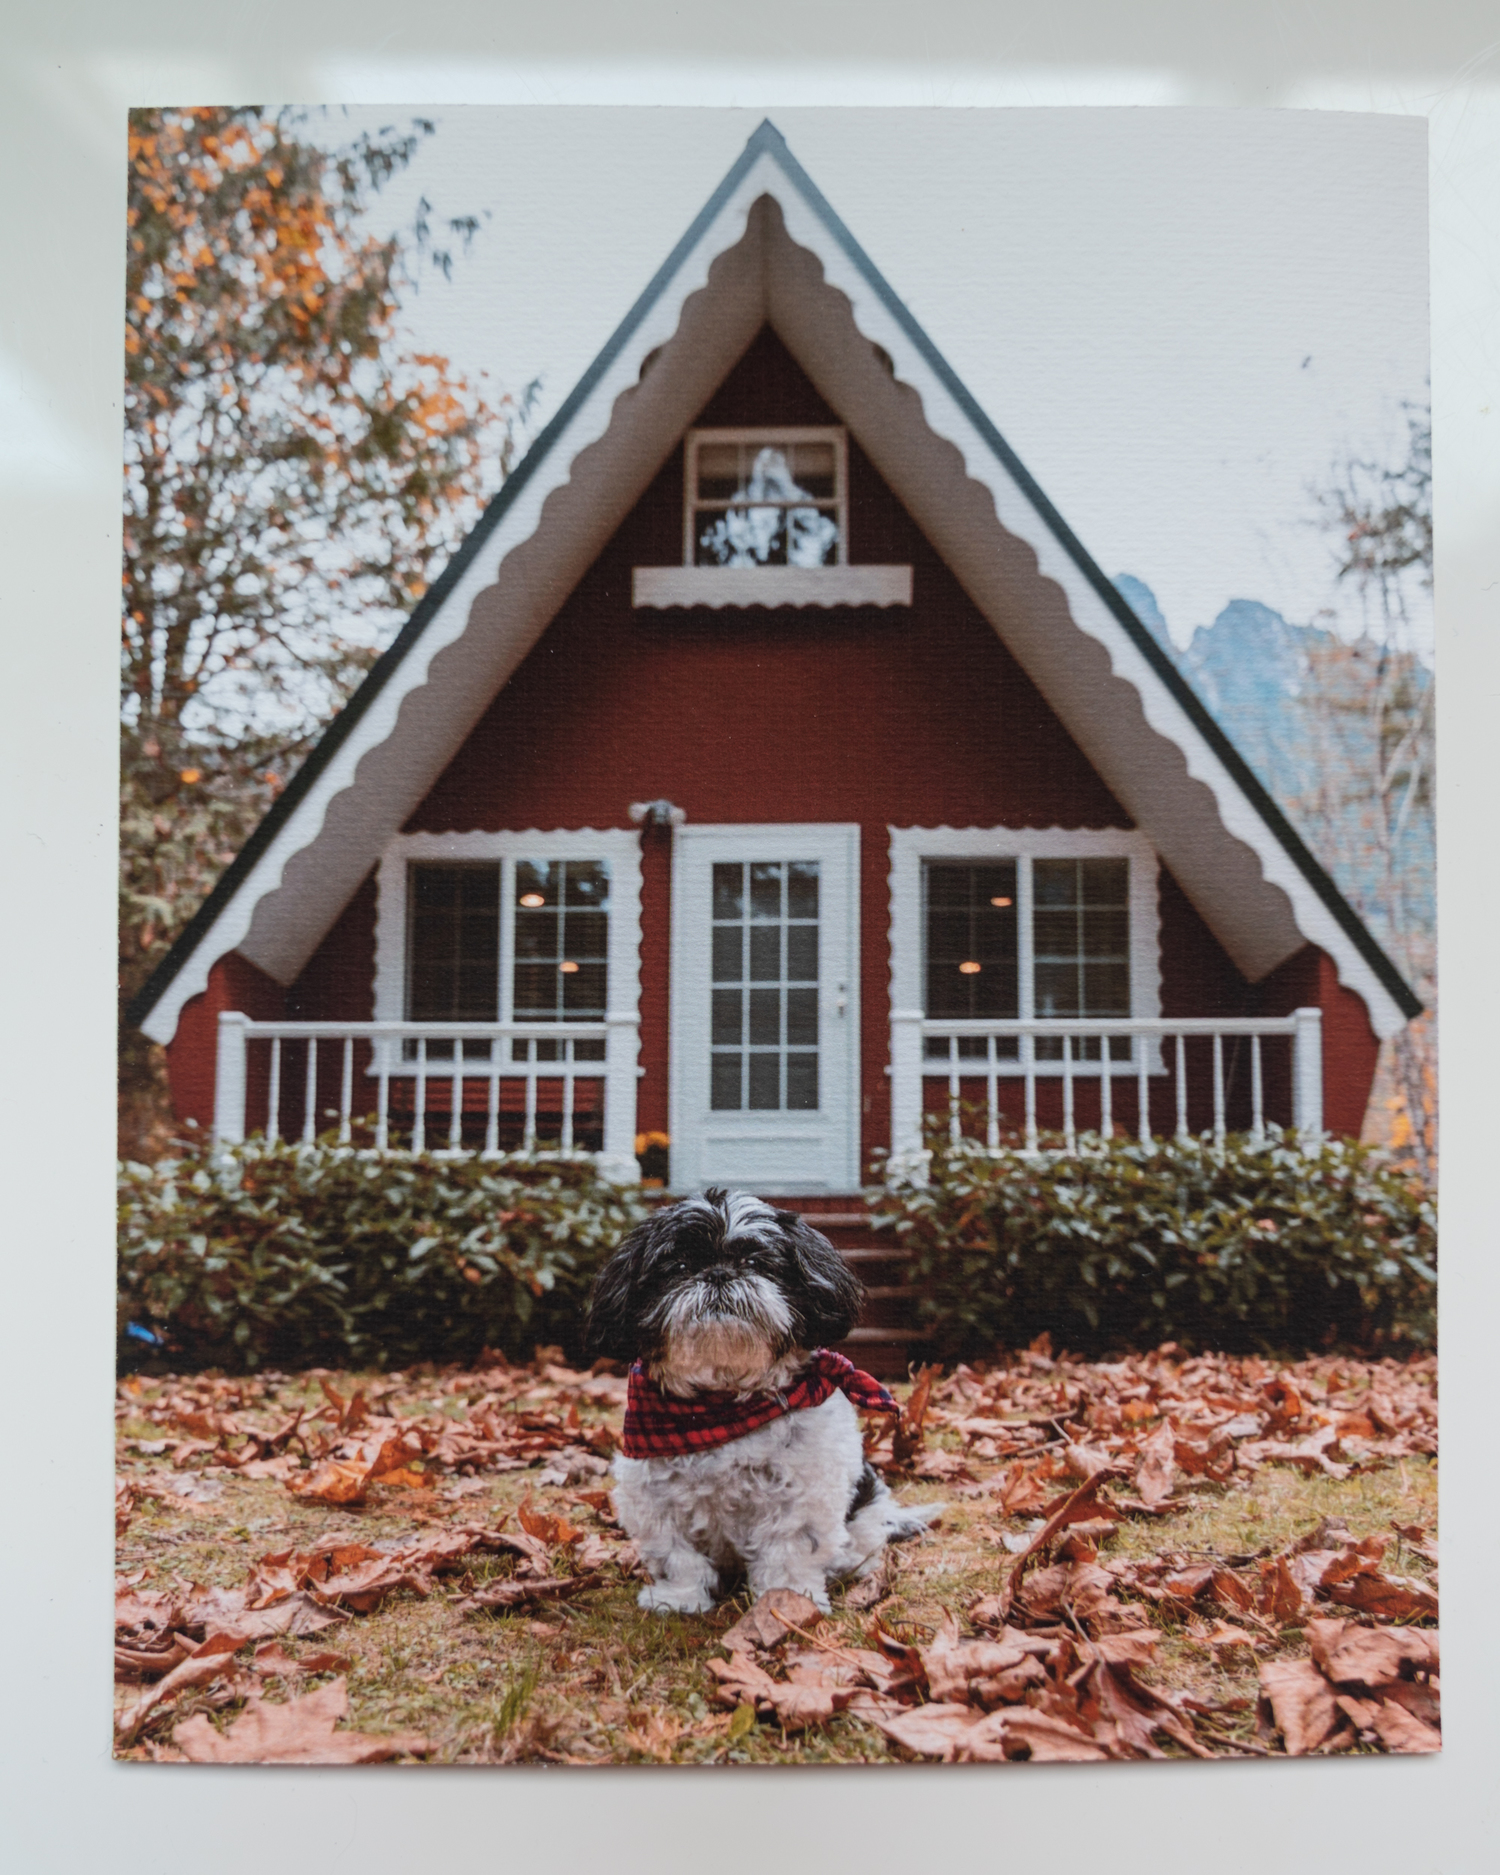 Photo of shih tzu in front of a red A-frame cabin on Printique's giclee paper